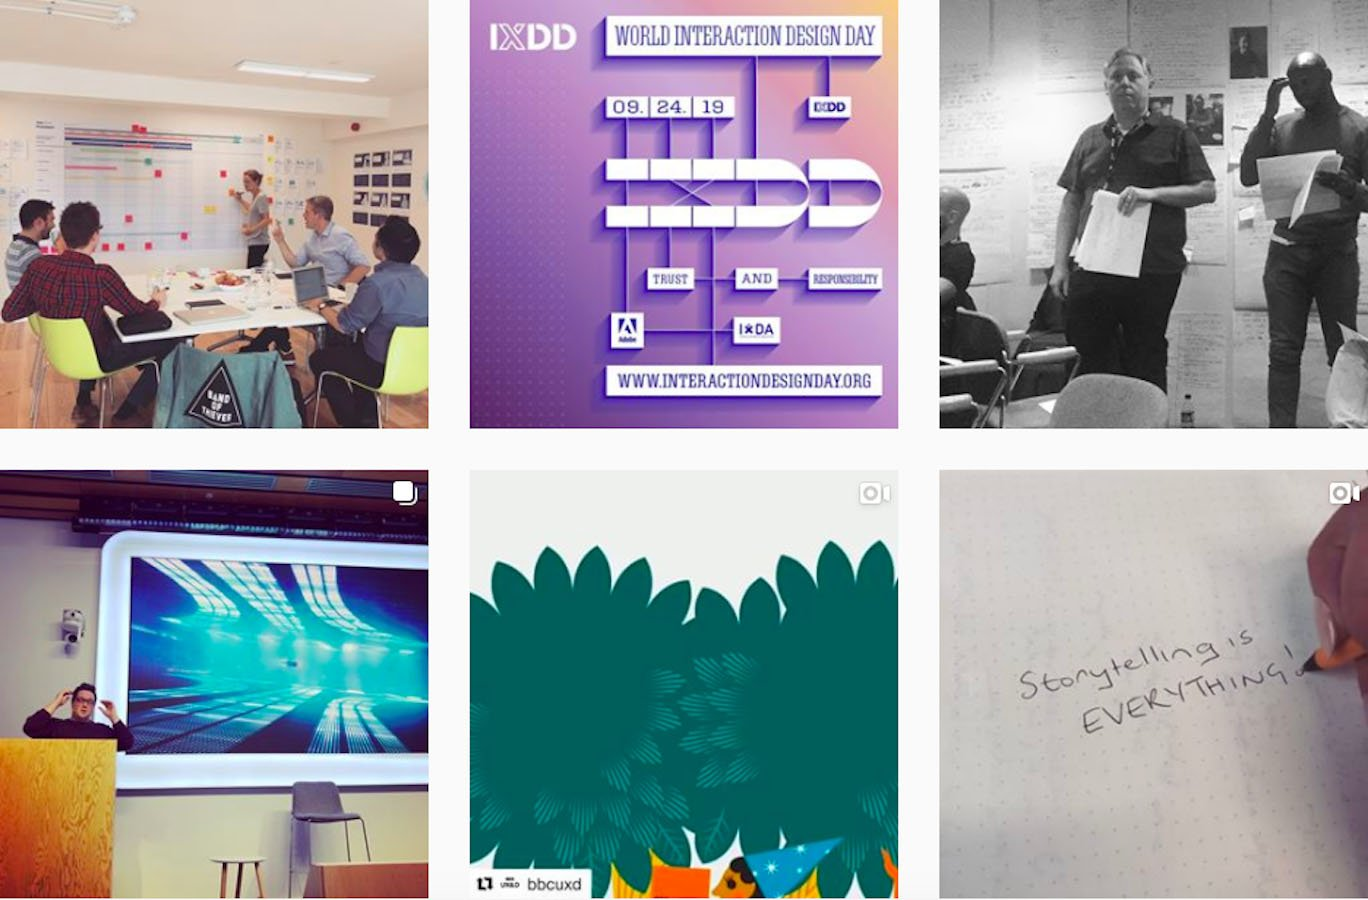 Web Design Inspiration: 110+ Accounts On Instagram and 10+ Best UX & Web Design Books in 2020 - iamnotmypixels